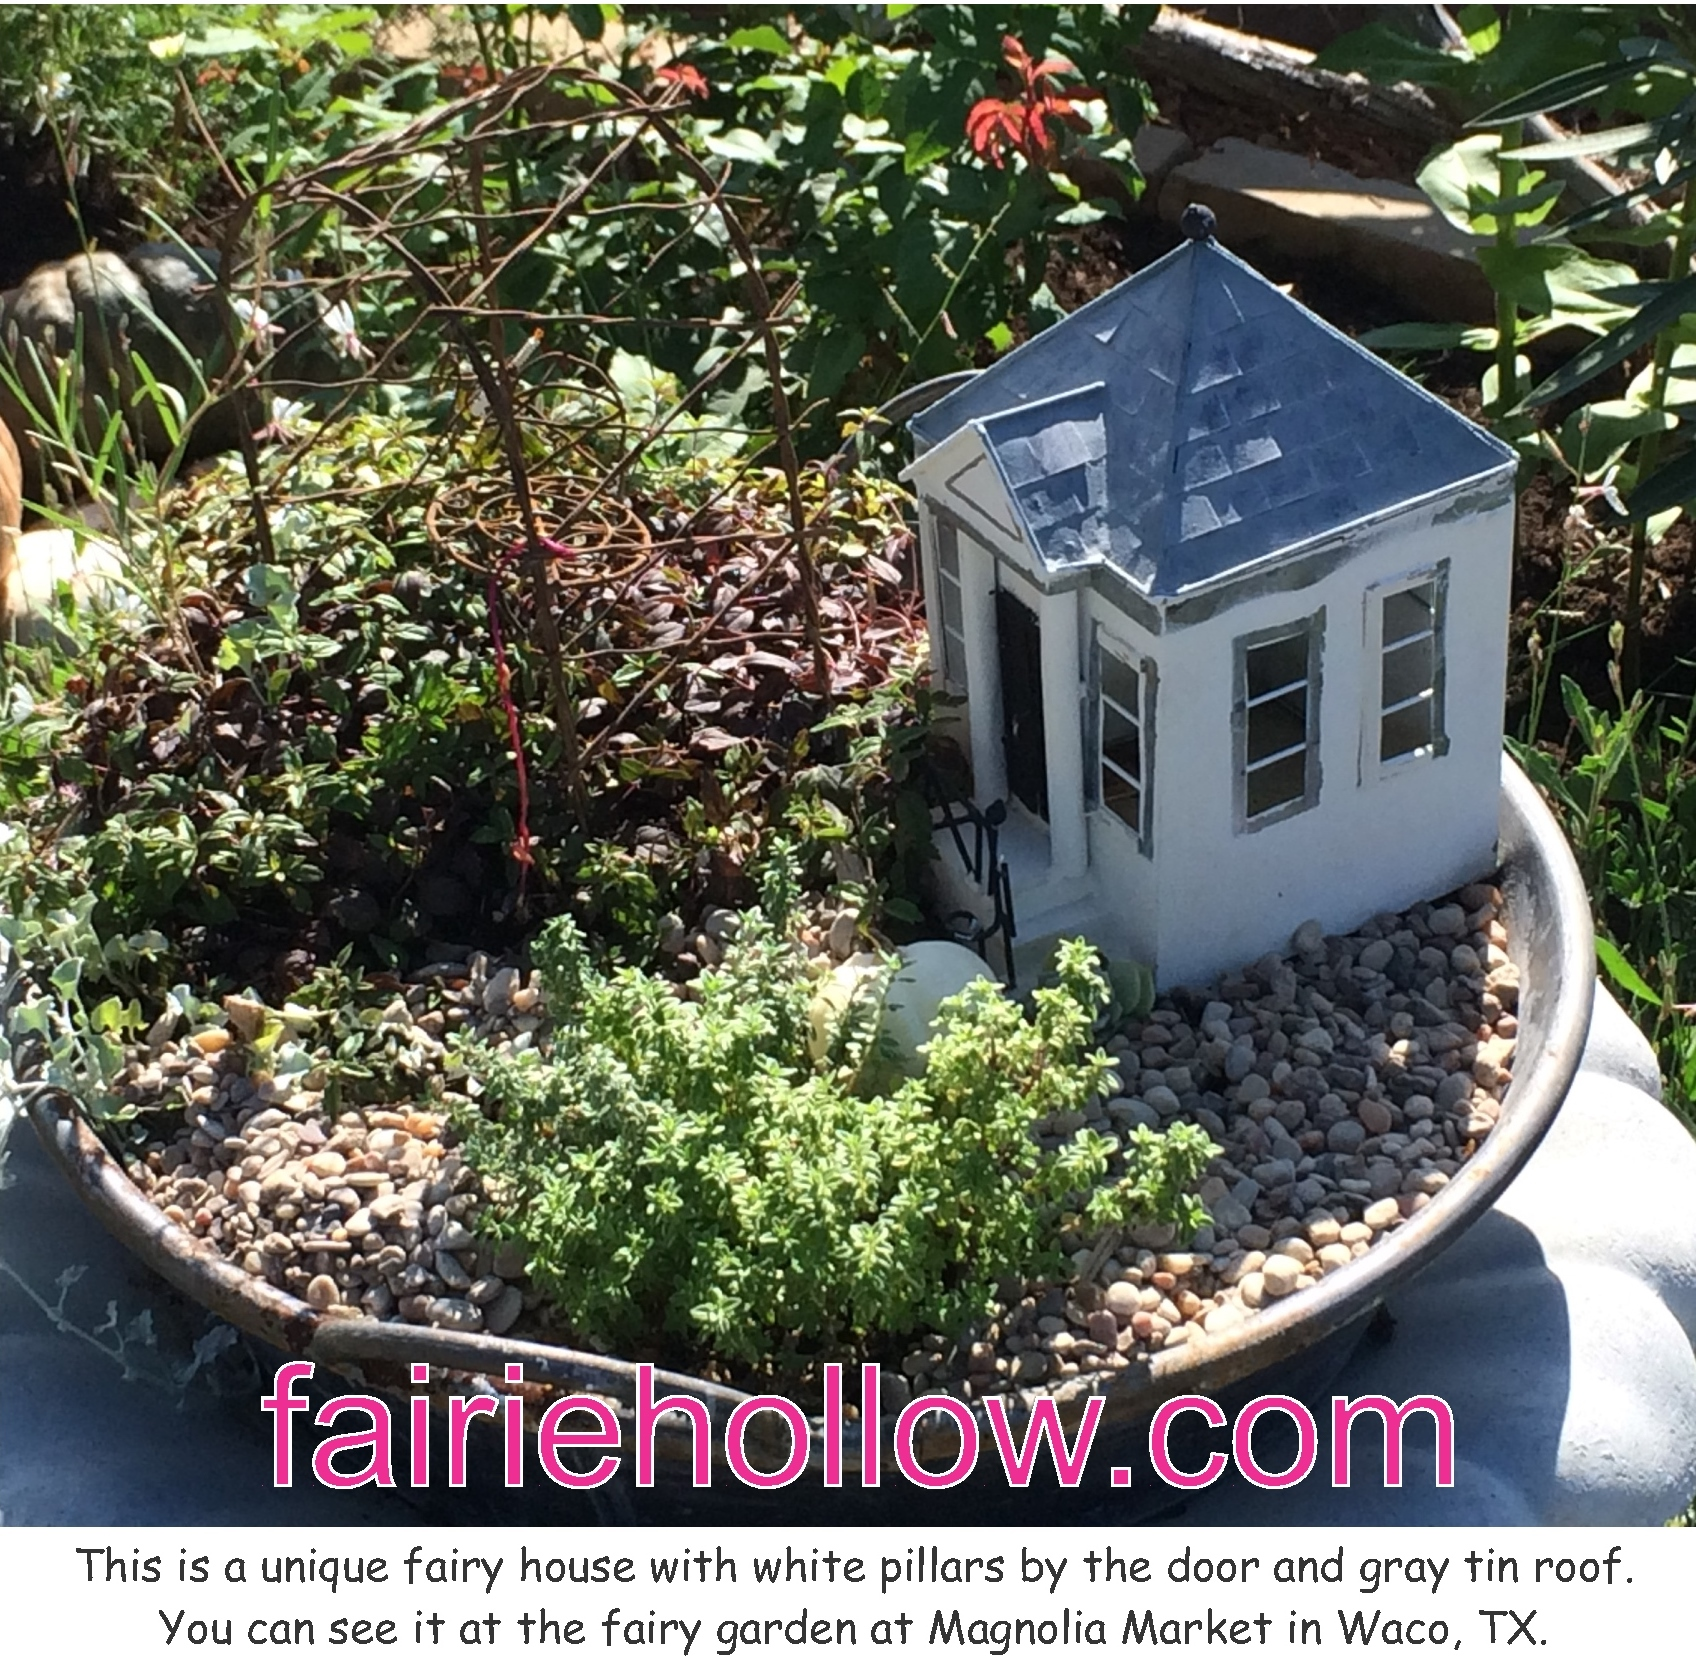 At Magnolia-Market- in Waco, Texas is a white fairy house-with-pillars | fairiehollow.com